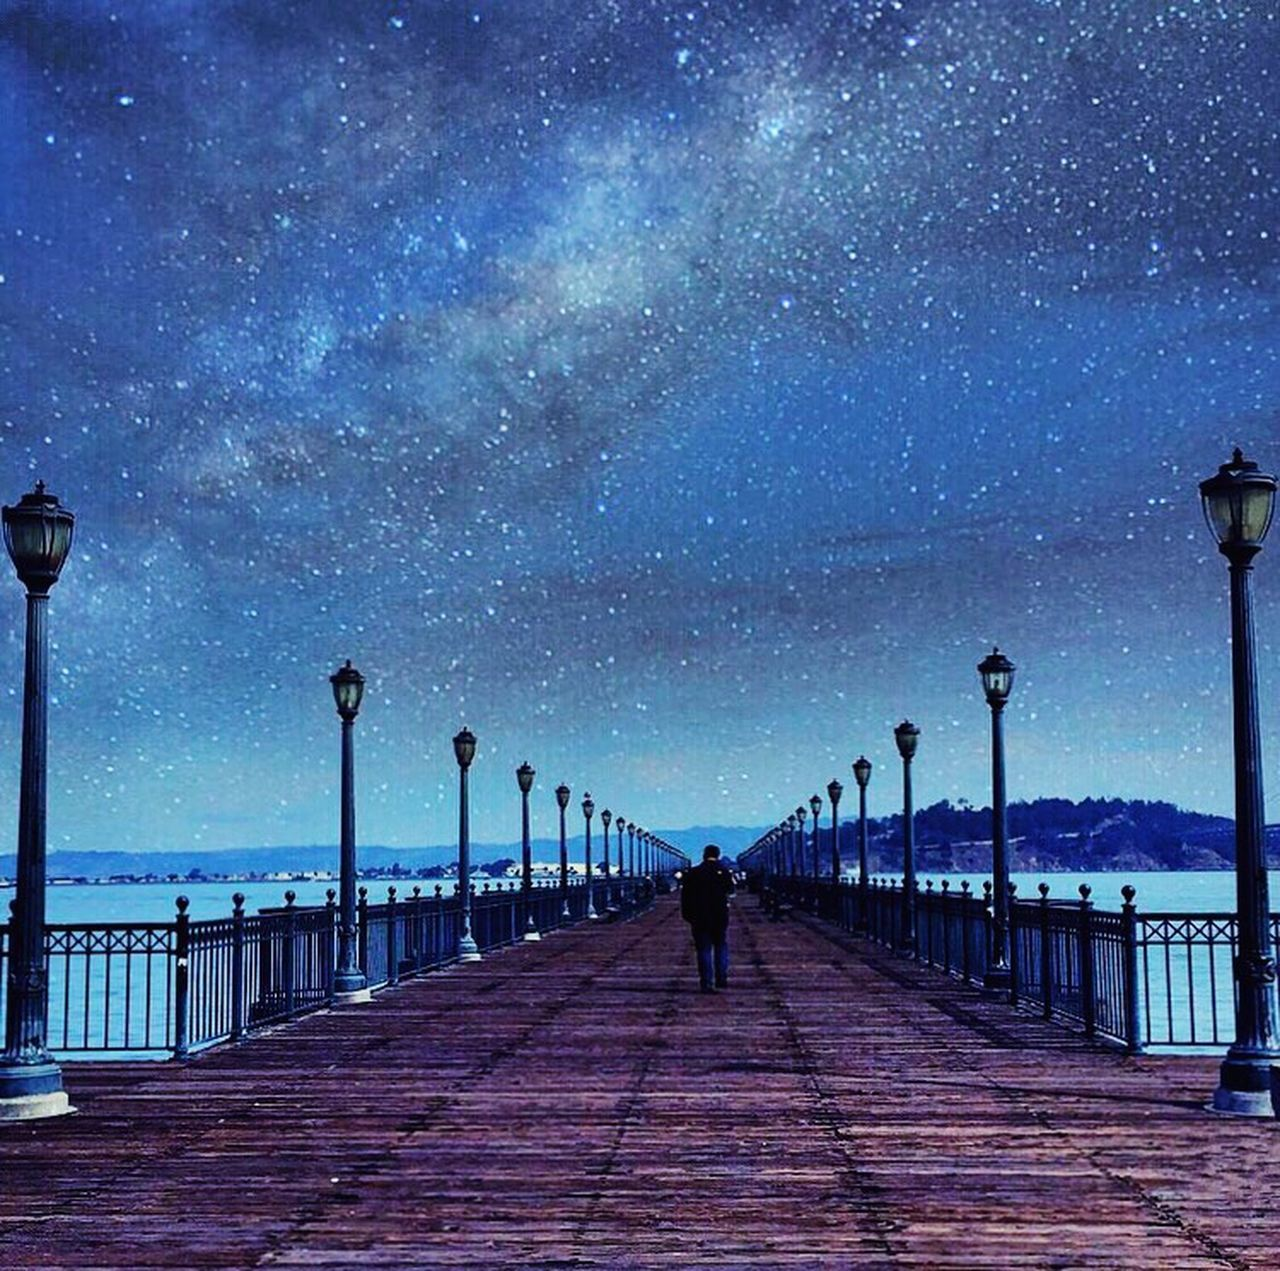 USA California Sanfrancisco San Francisco SanFranciscoBay Pier39 Night Star - Space Milky Way Astronomy Sky Pier Summer Sea Galaxy Space Long Boardwalk Beauty In Nature People Nature Outdoors IPhoneography Iphoneonly Streetphotography